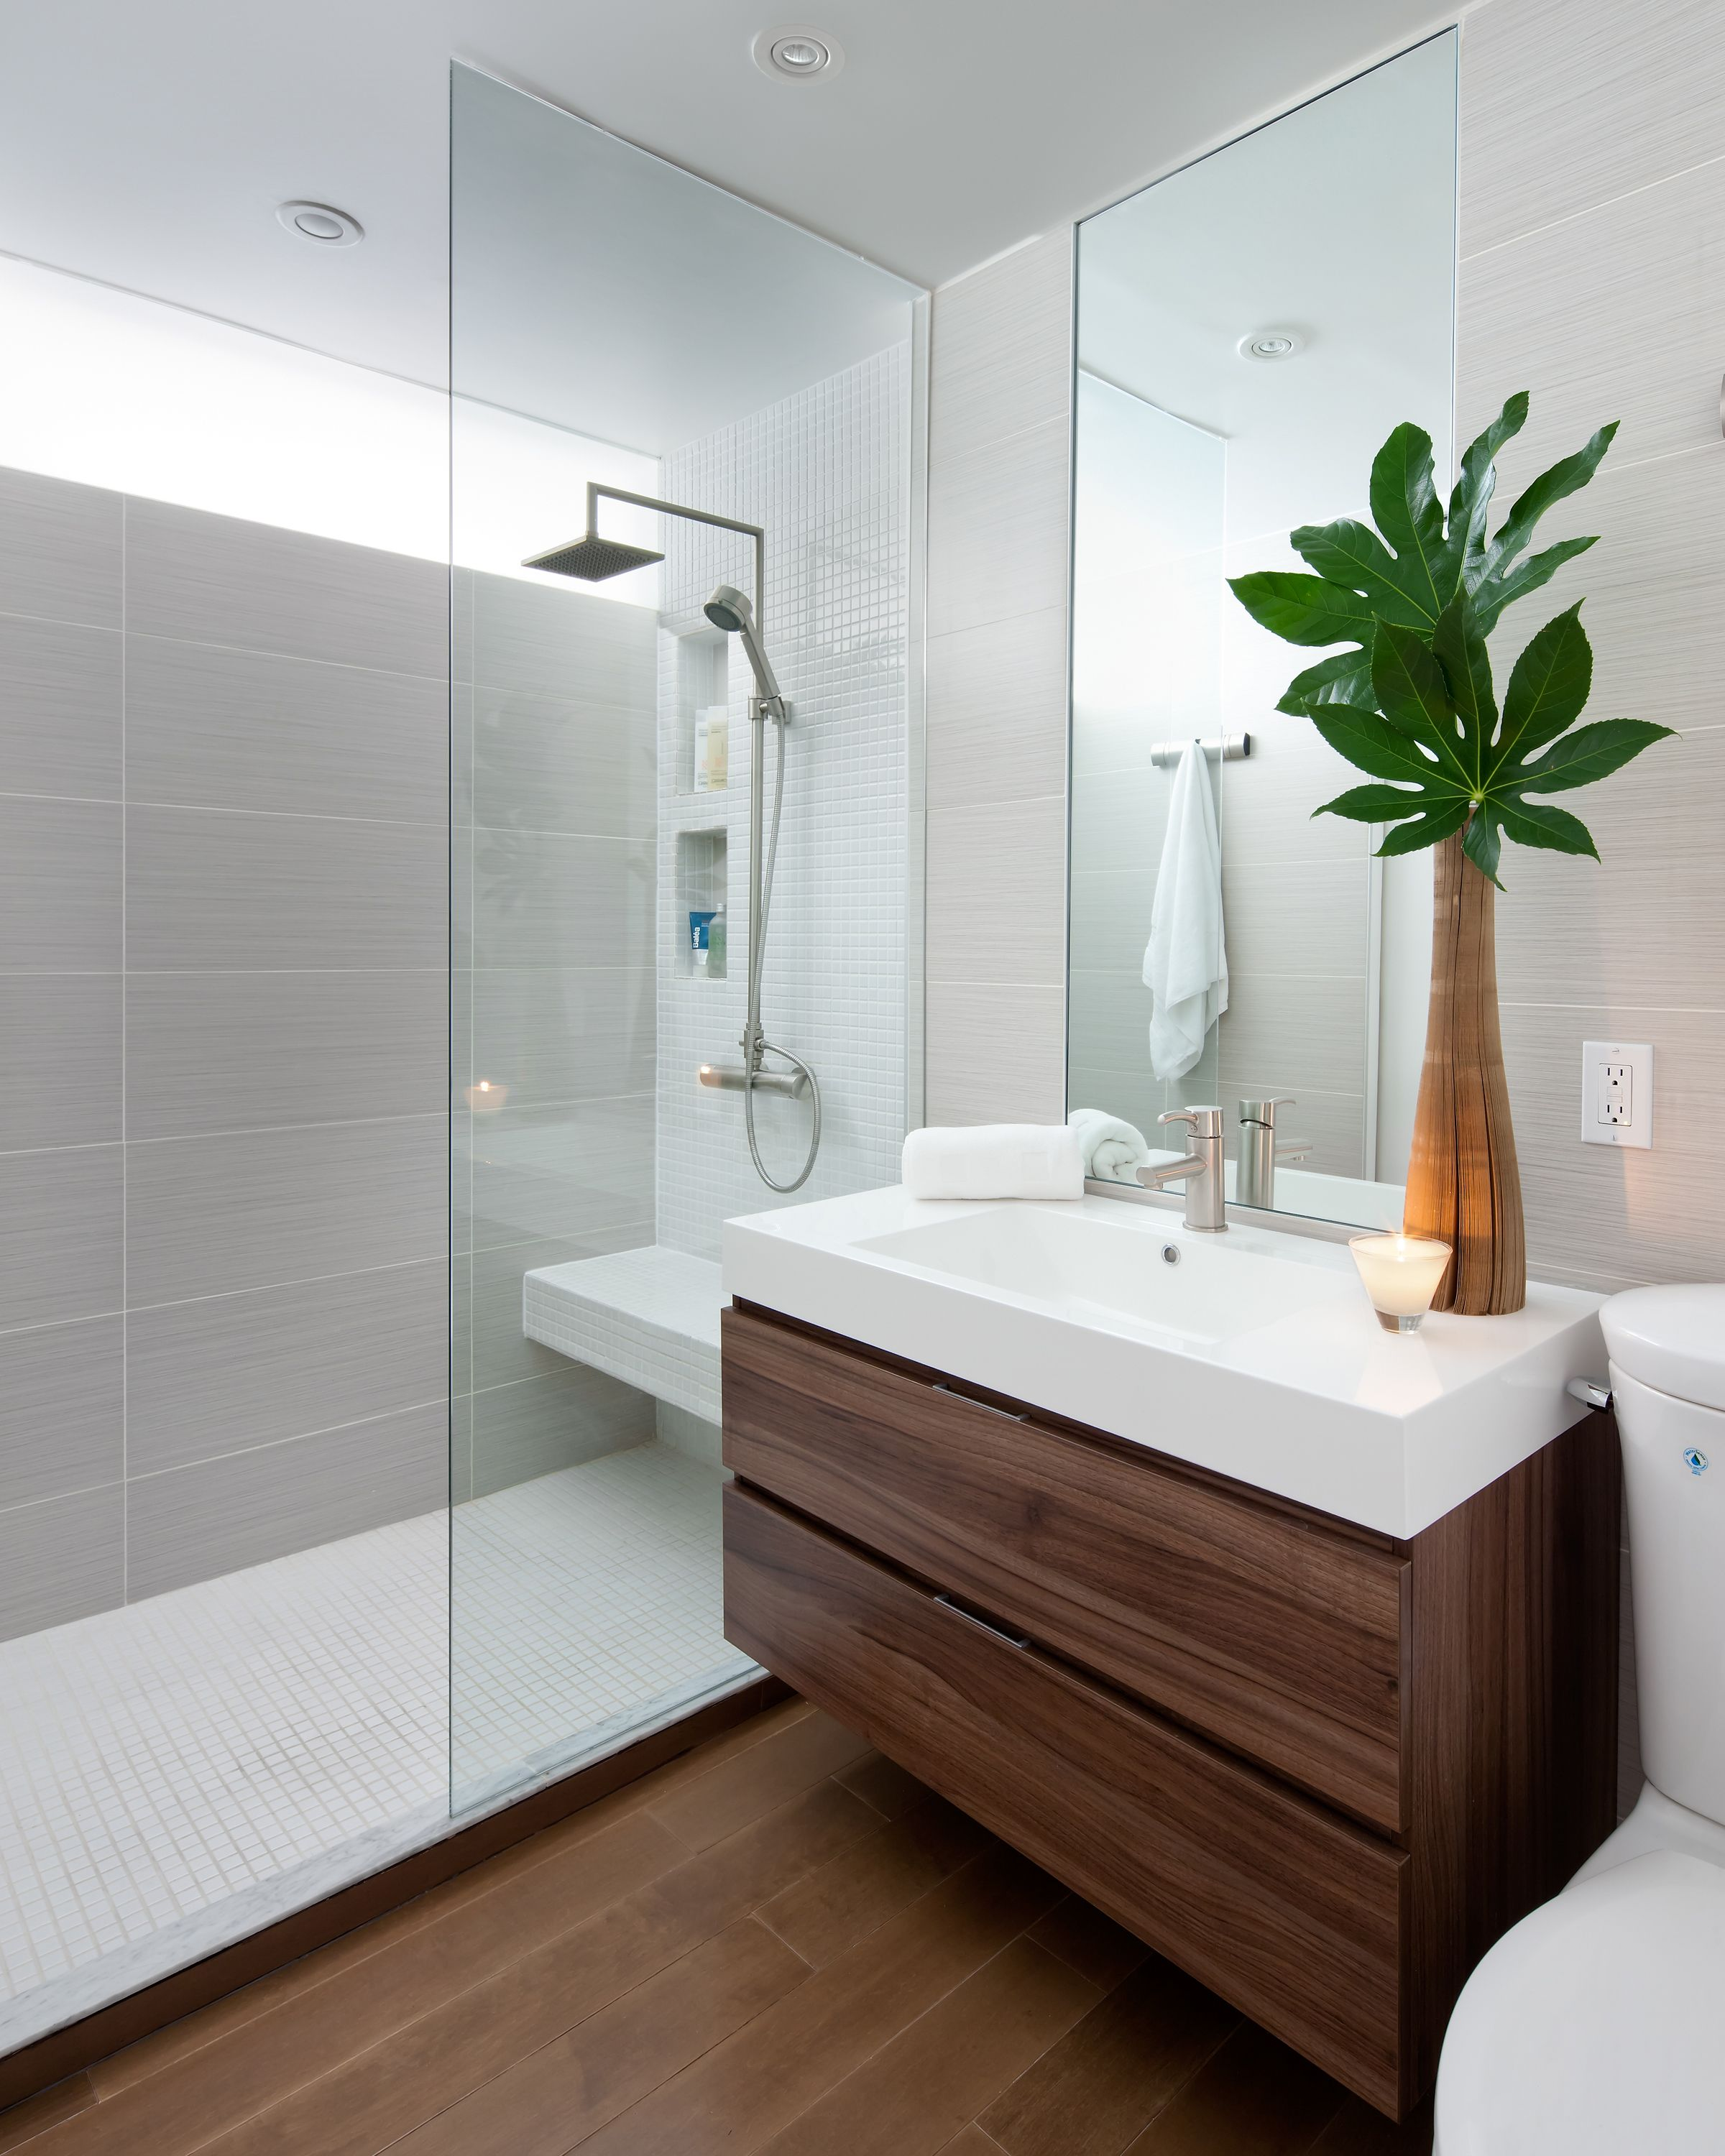 AFTER Pic Bathroom in 850 sq ft Condo | Bathrooms | Pinterest ...